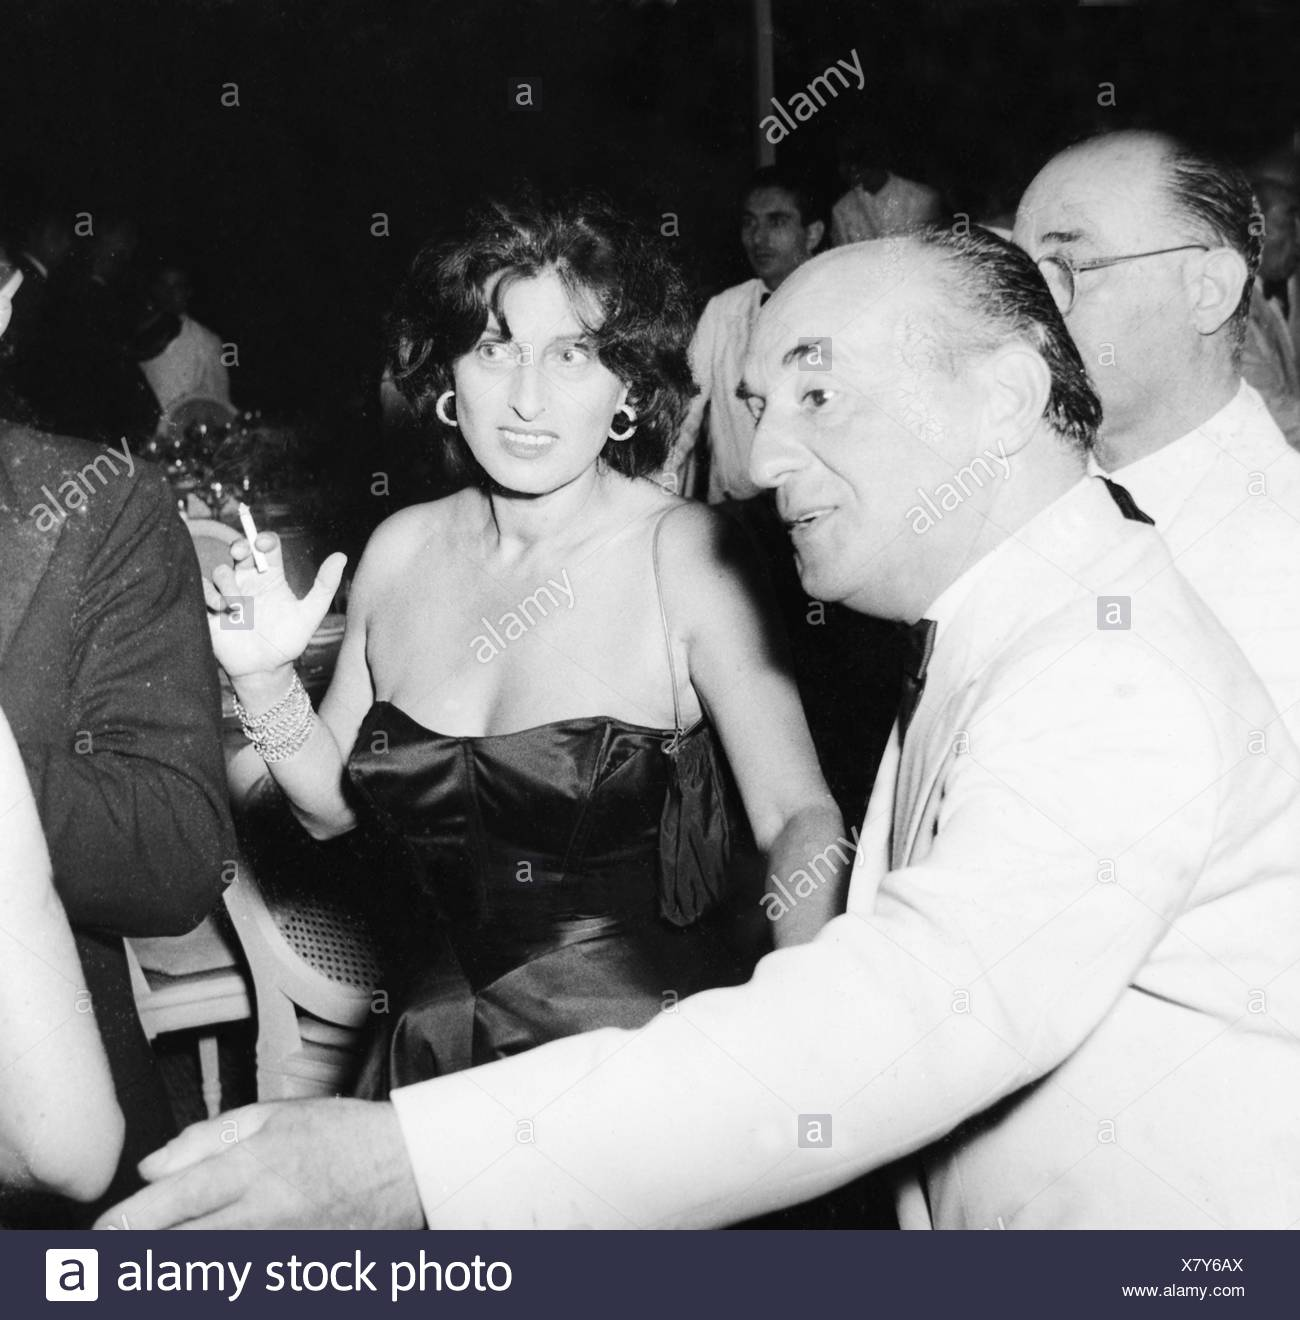 Magnani, Anna, 7.3.1908 - 26.9.1973, Italian actress, half length, with Leonide Moguy, at celebration on the occasion of the premiere of her movie, 'The Awakening' (Suor Letizia), 1956, Additional-Rights-Clearances-NA - Stock Image